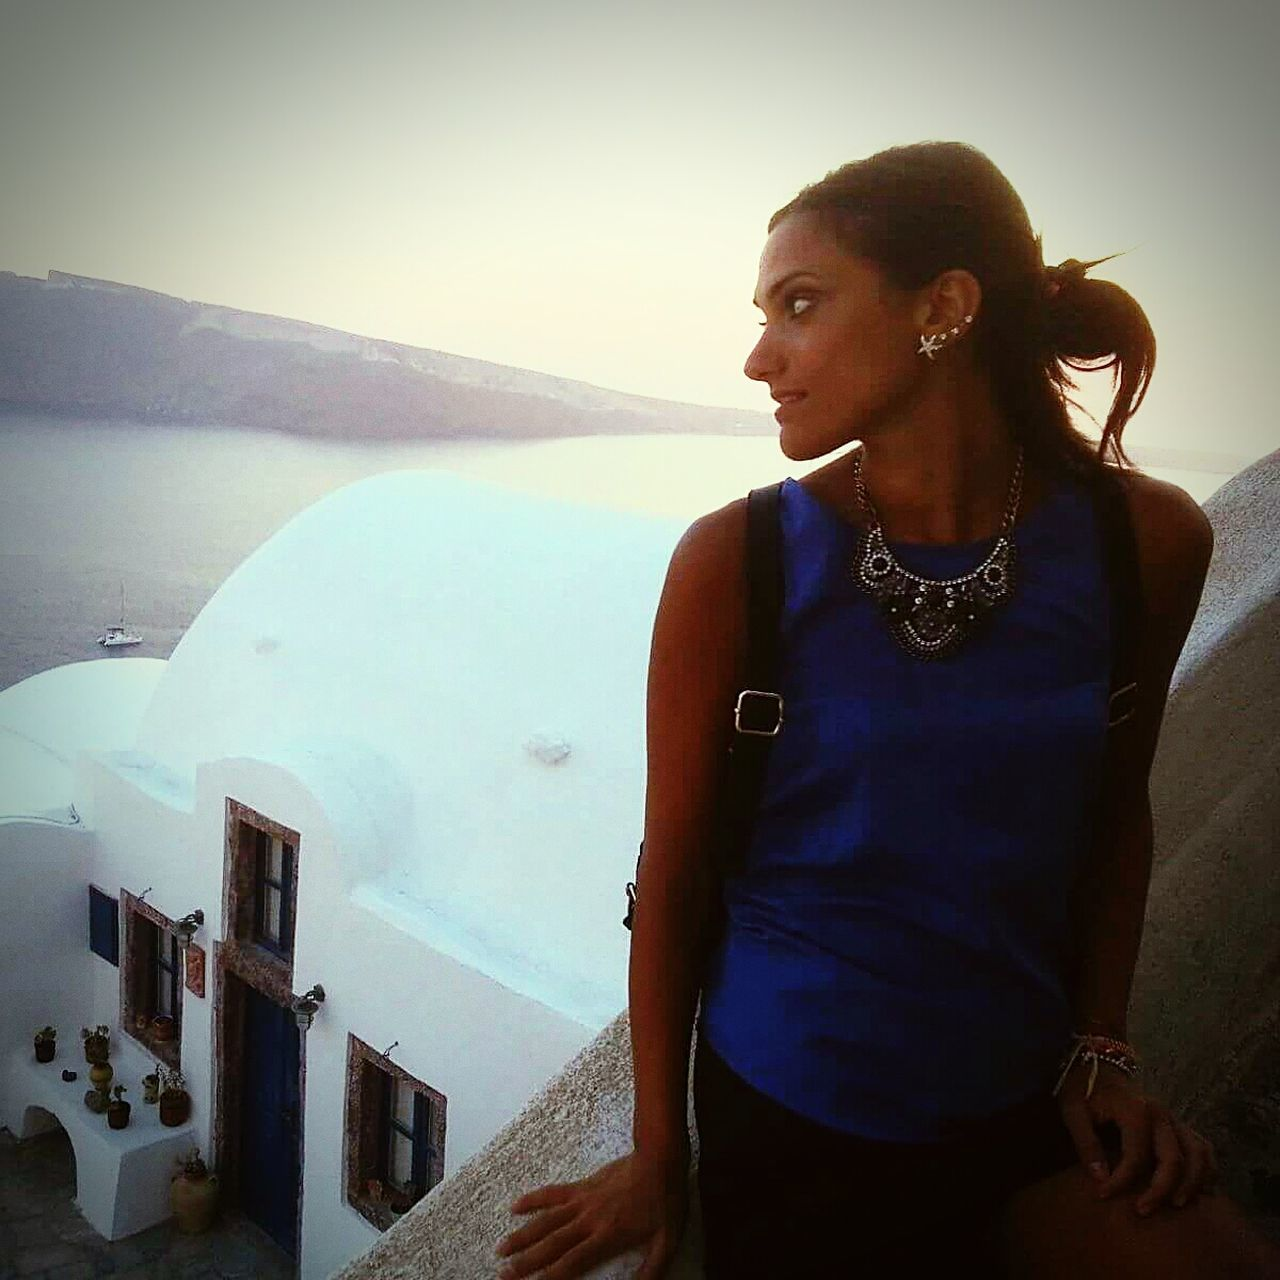 Santorini, Greece Memories ❤ holiday That's Me Relaxing Enjoying Life Hello World